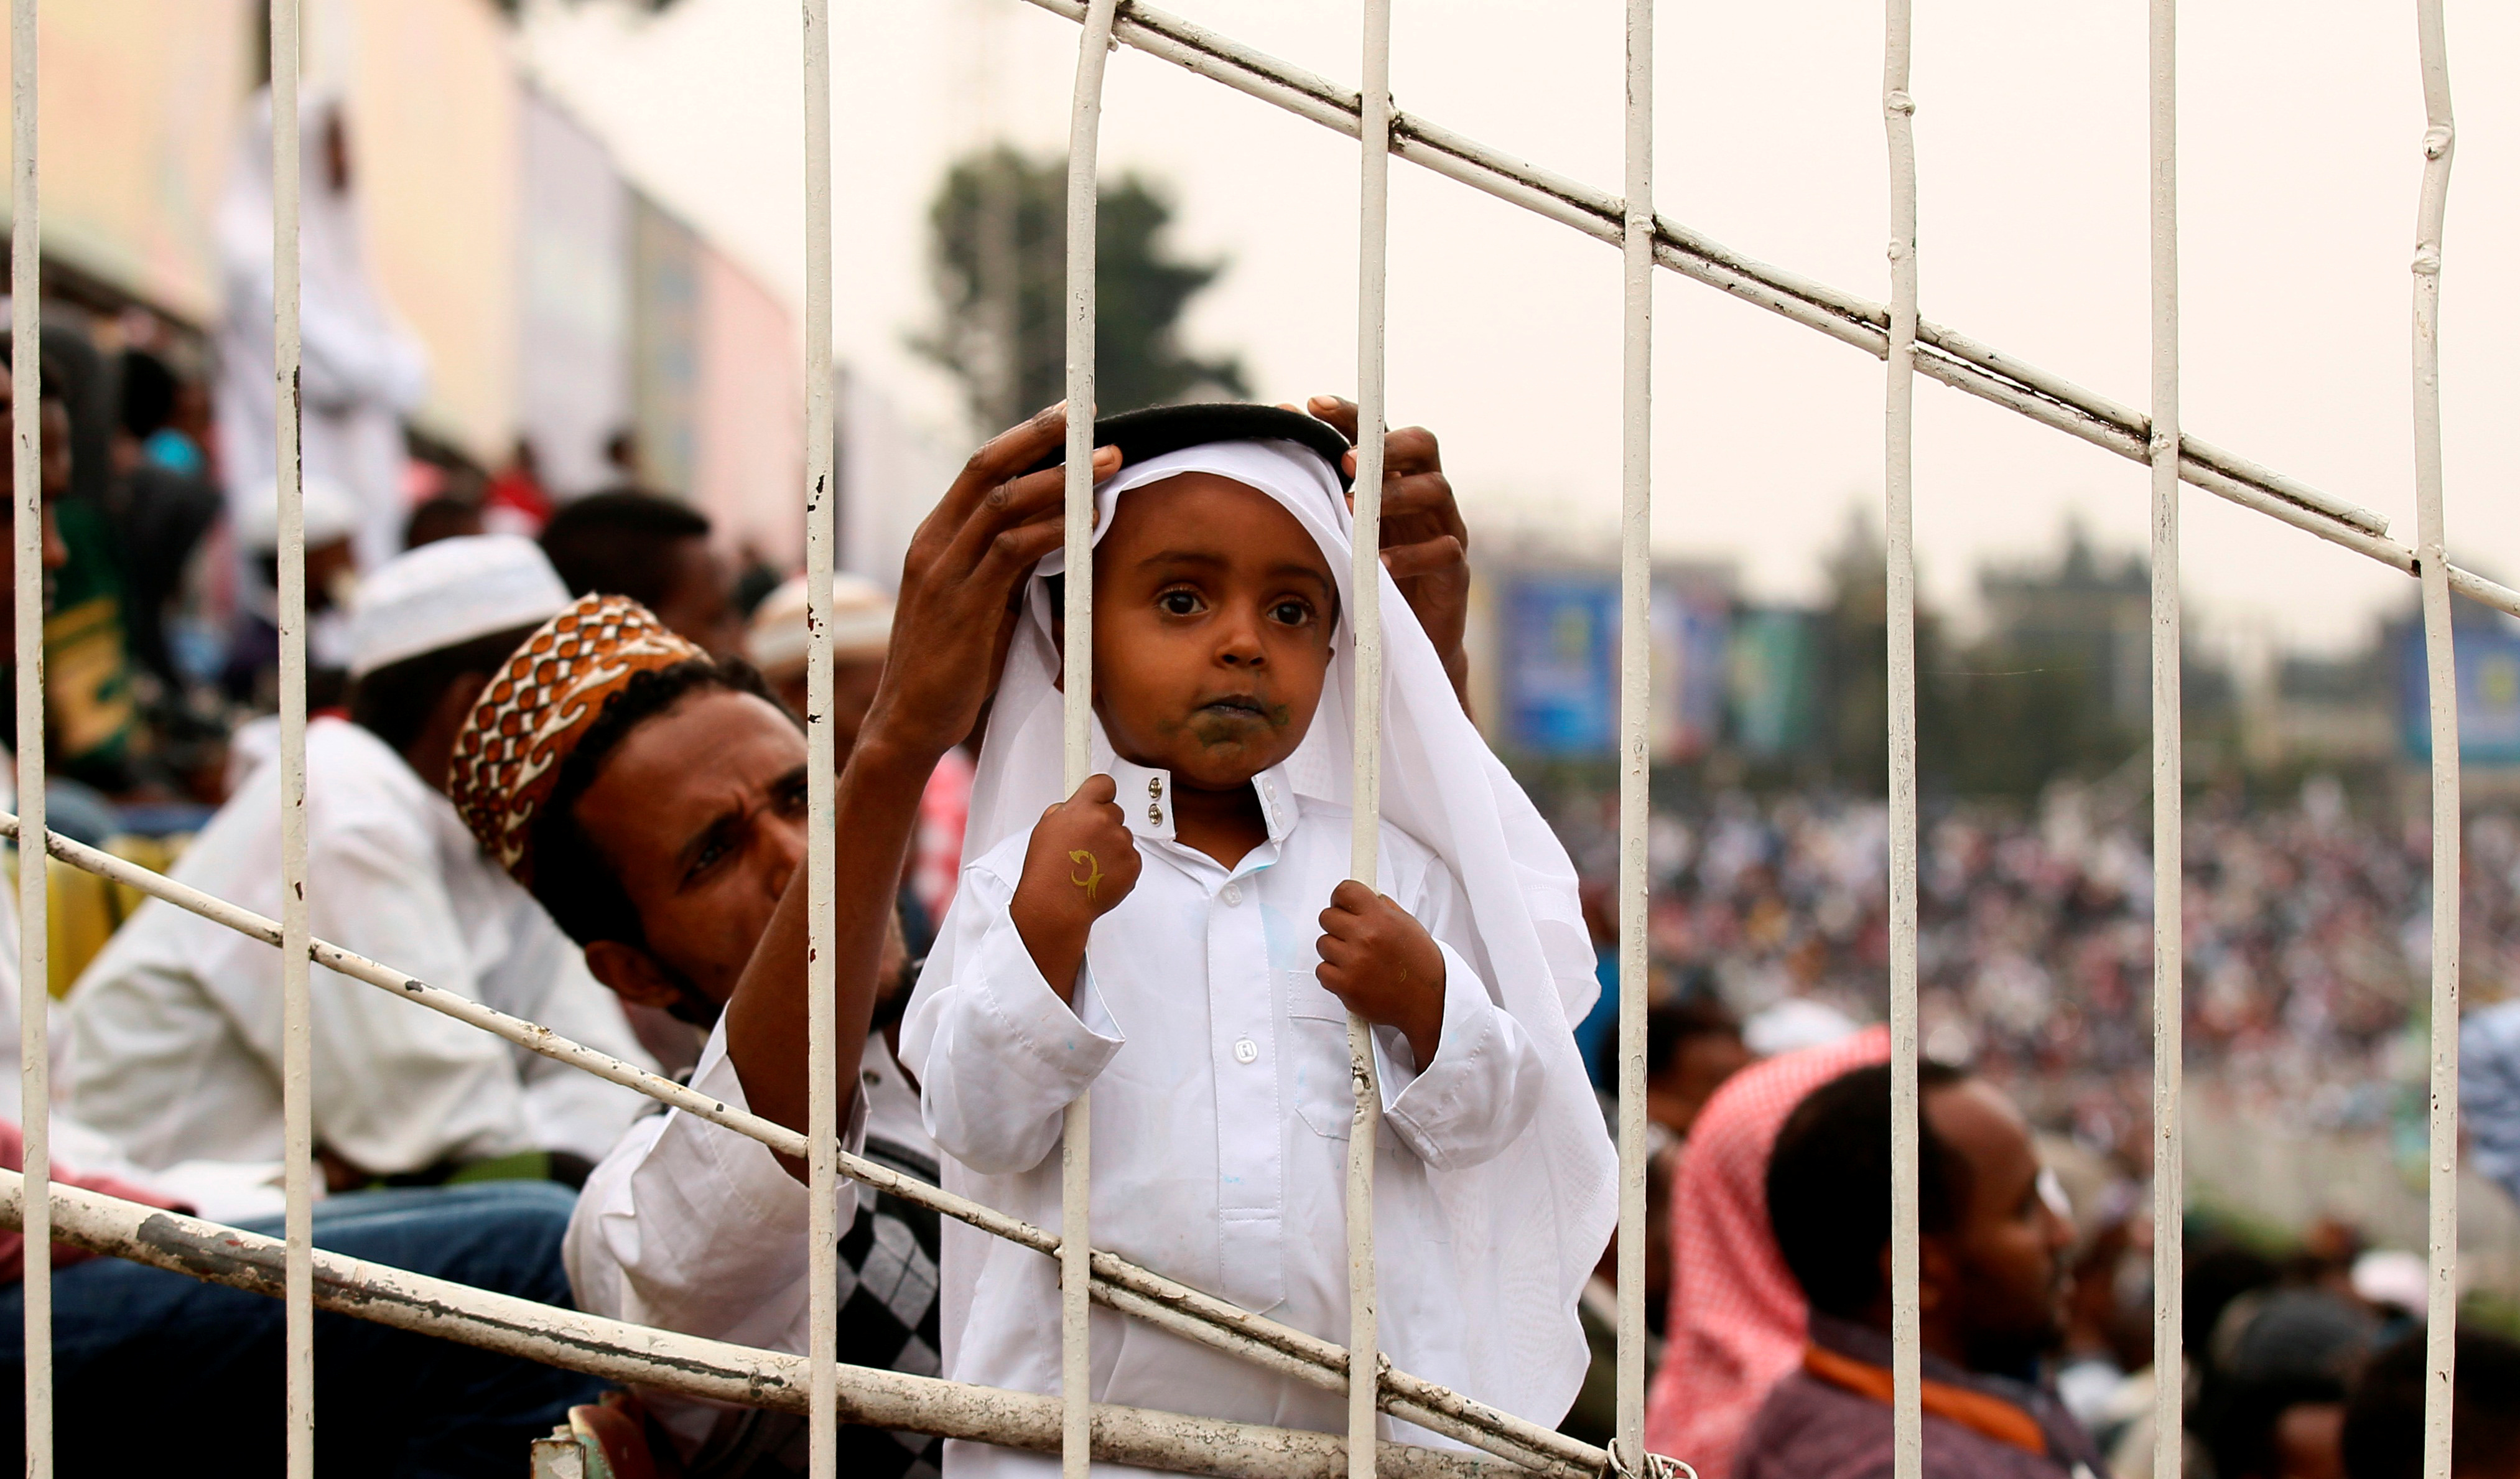 A Muslim boy attends Eid al-Fitr prayers to mark the end of the holy fasting month of Ramadan in Addis Ababa, Ethiopia July 6, 2016.